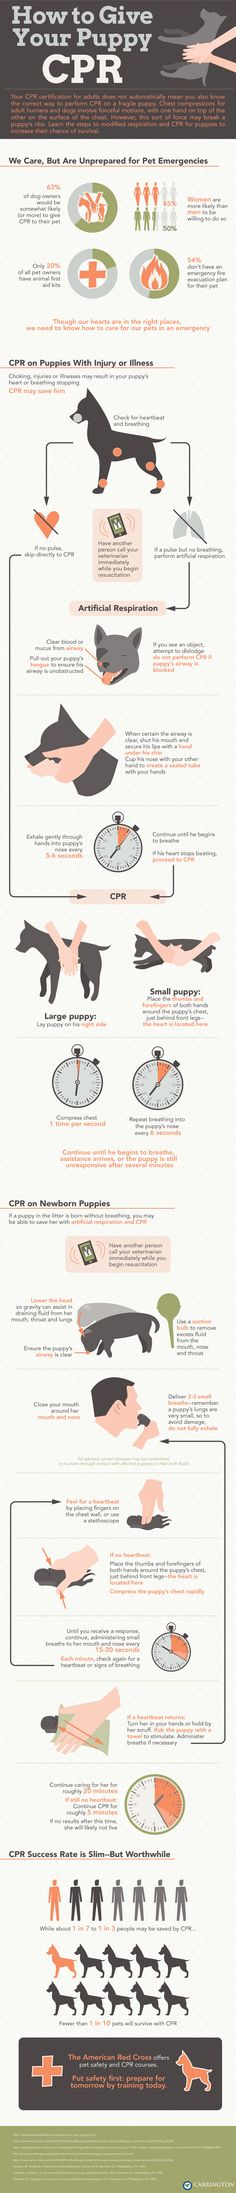 How To Give Your Puppy CPR [INFOGRAPHIC]